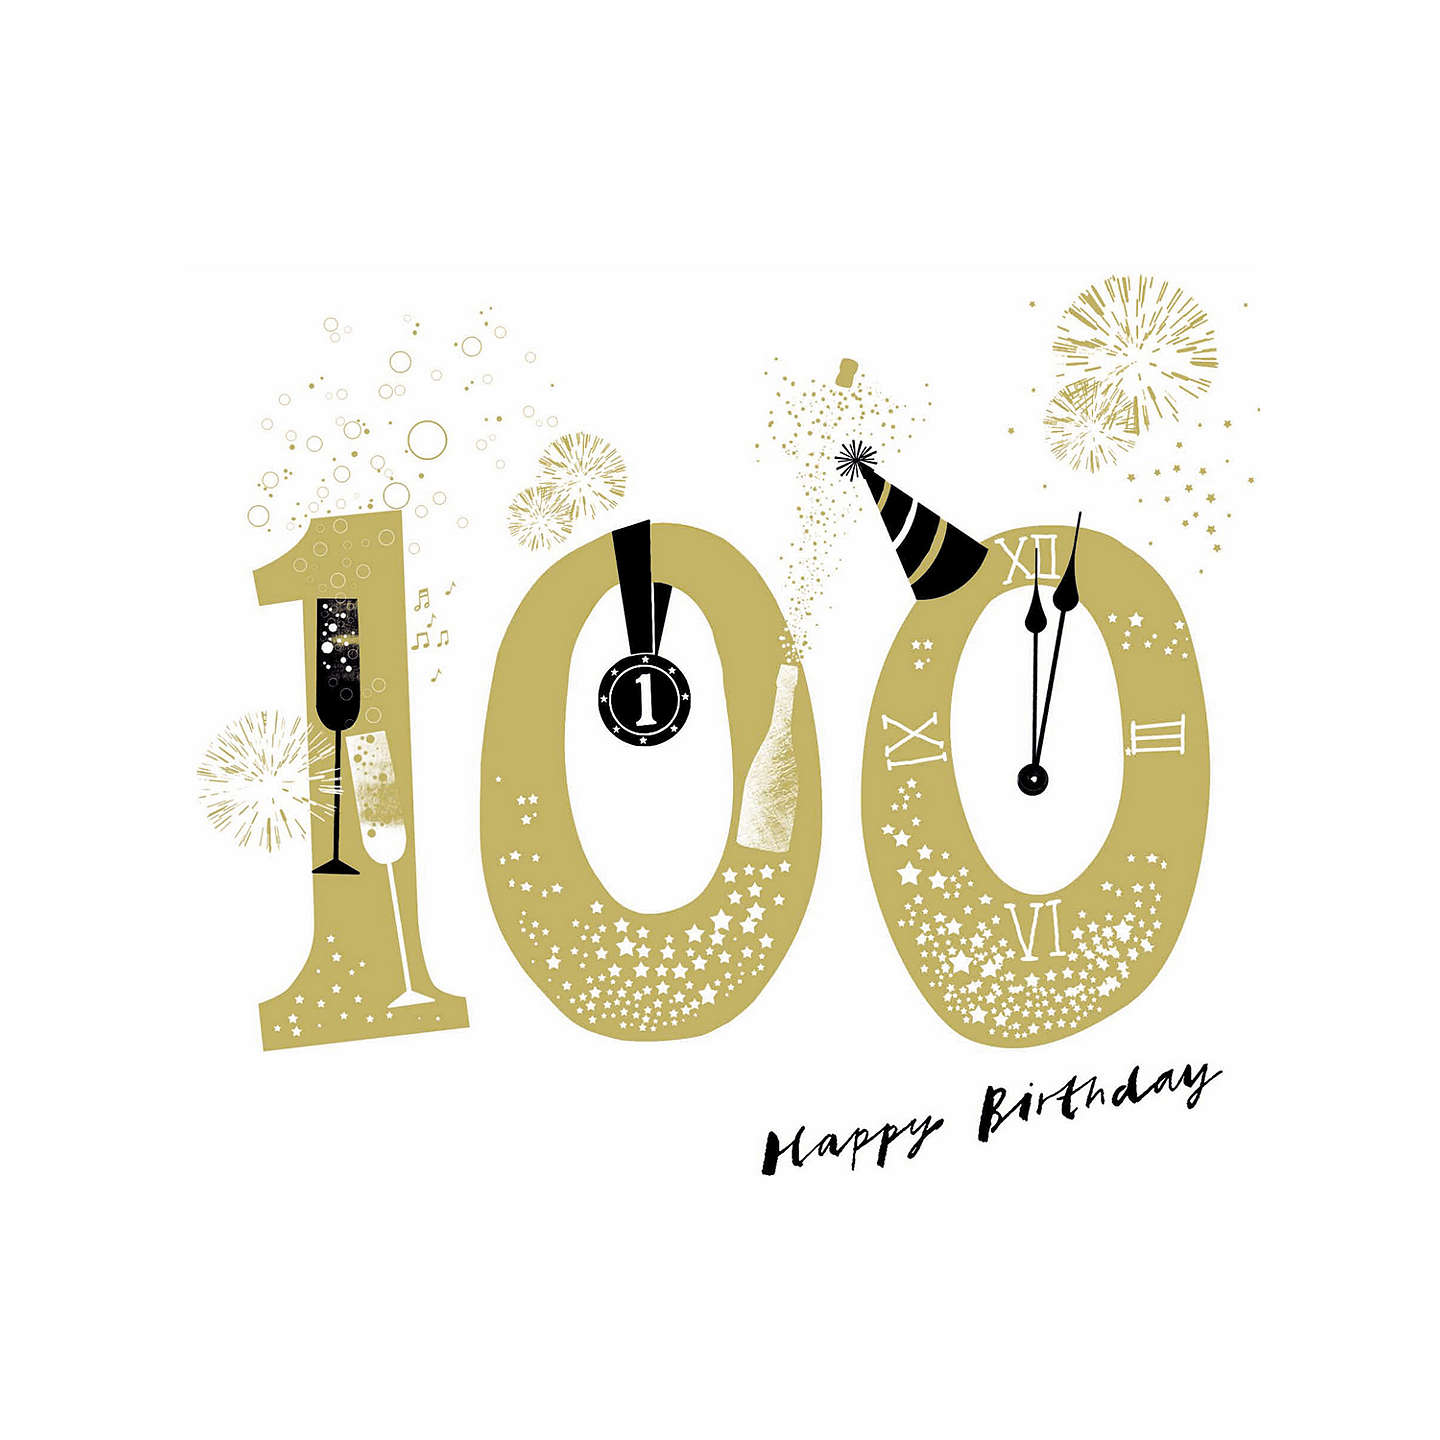 Woodmansterne big bang 100th birthday card at john lewis buywoodmansterne big bang 100th birthday card online at johnlewis bookmarktalkfo Images